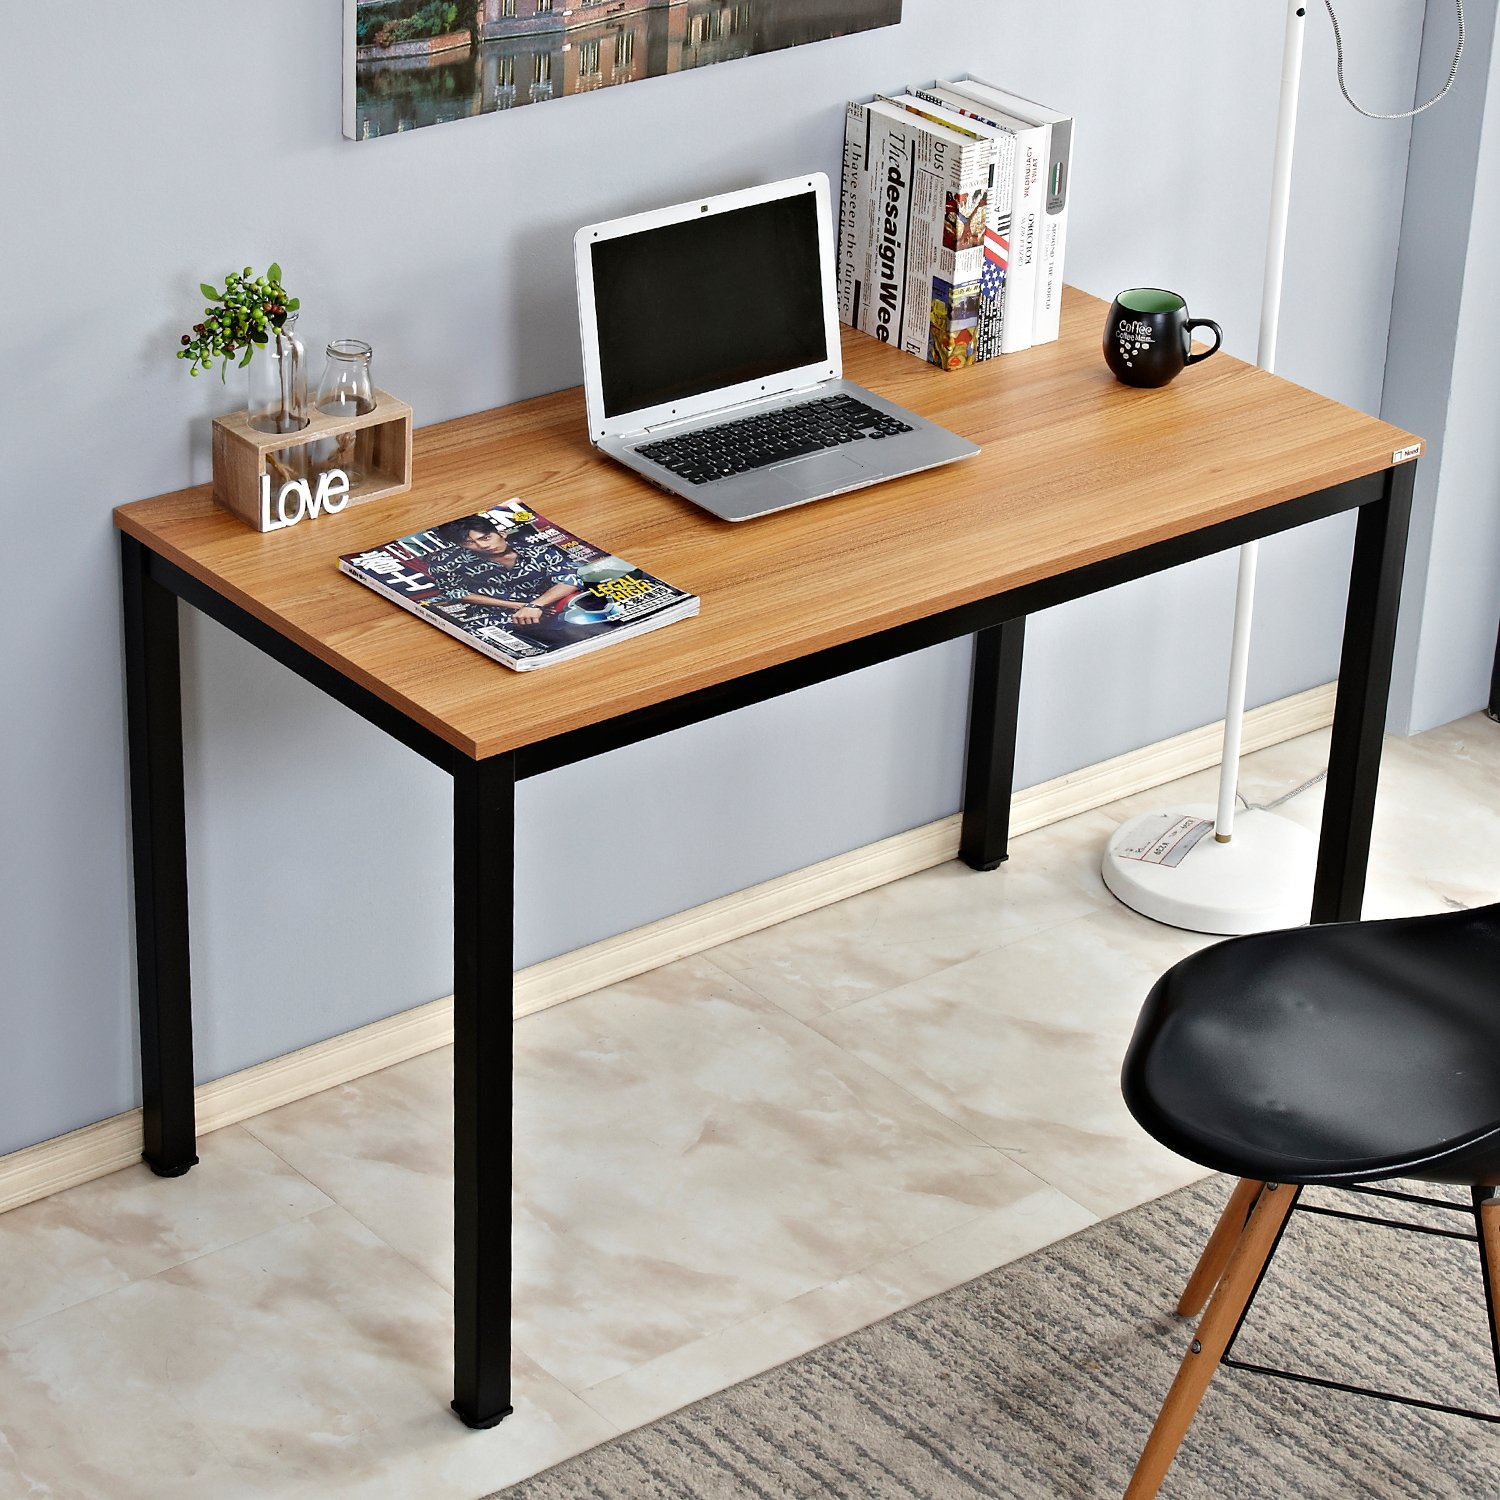 Need 47'' Computer Desk with Cable Organizer, Sturdy Office Meeting/Training Desk with BIFMA Certification, Teak AC12BB-120